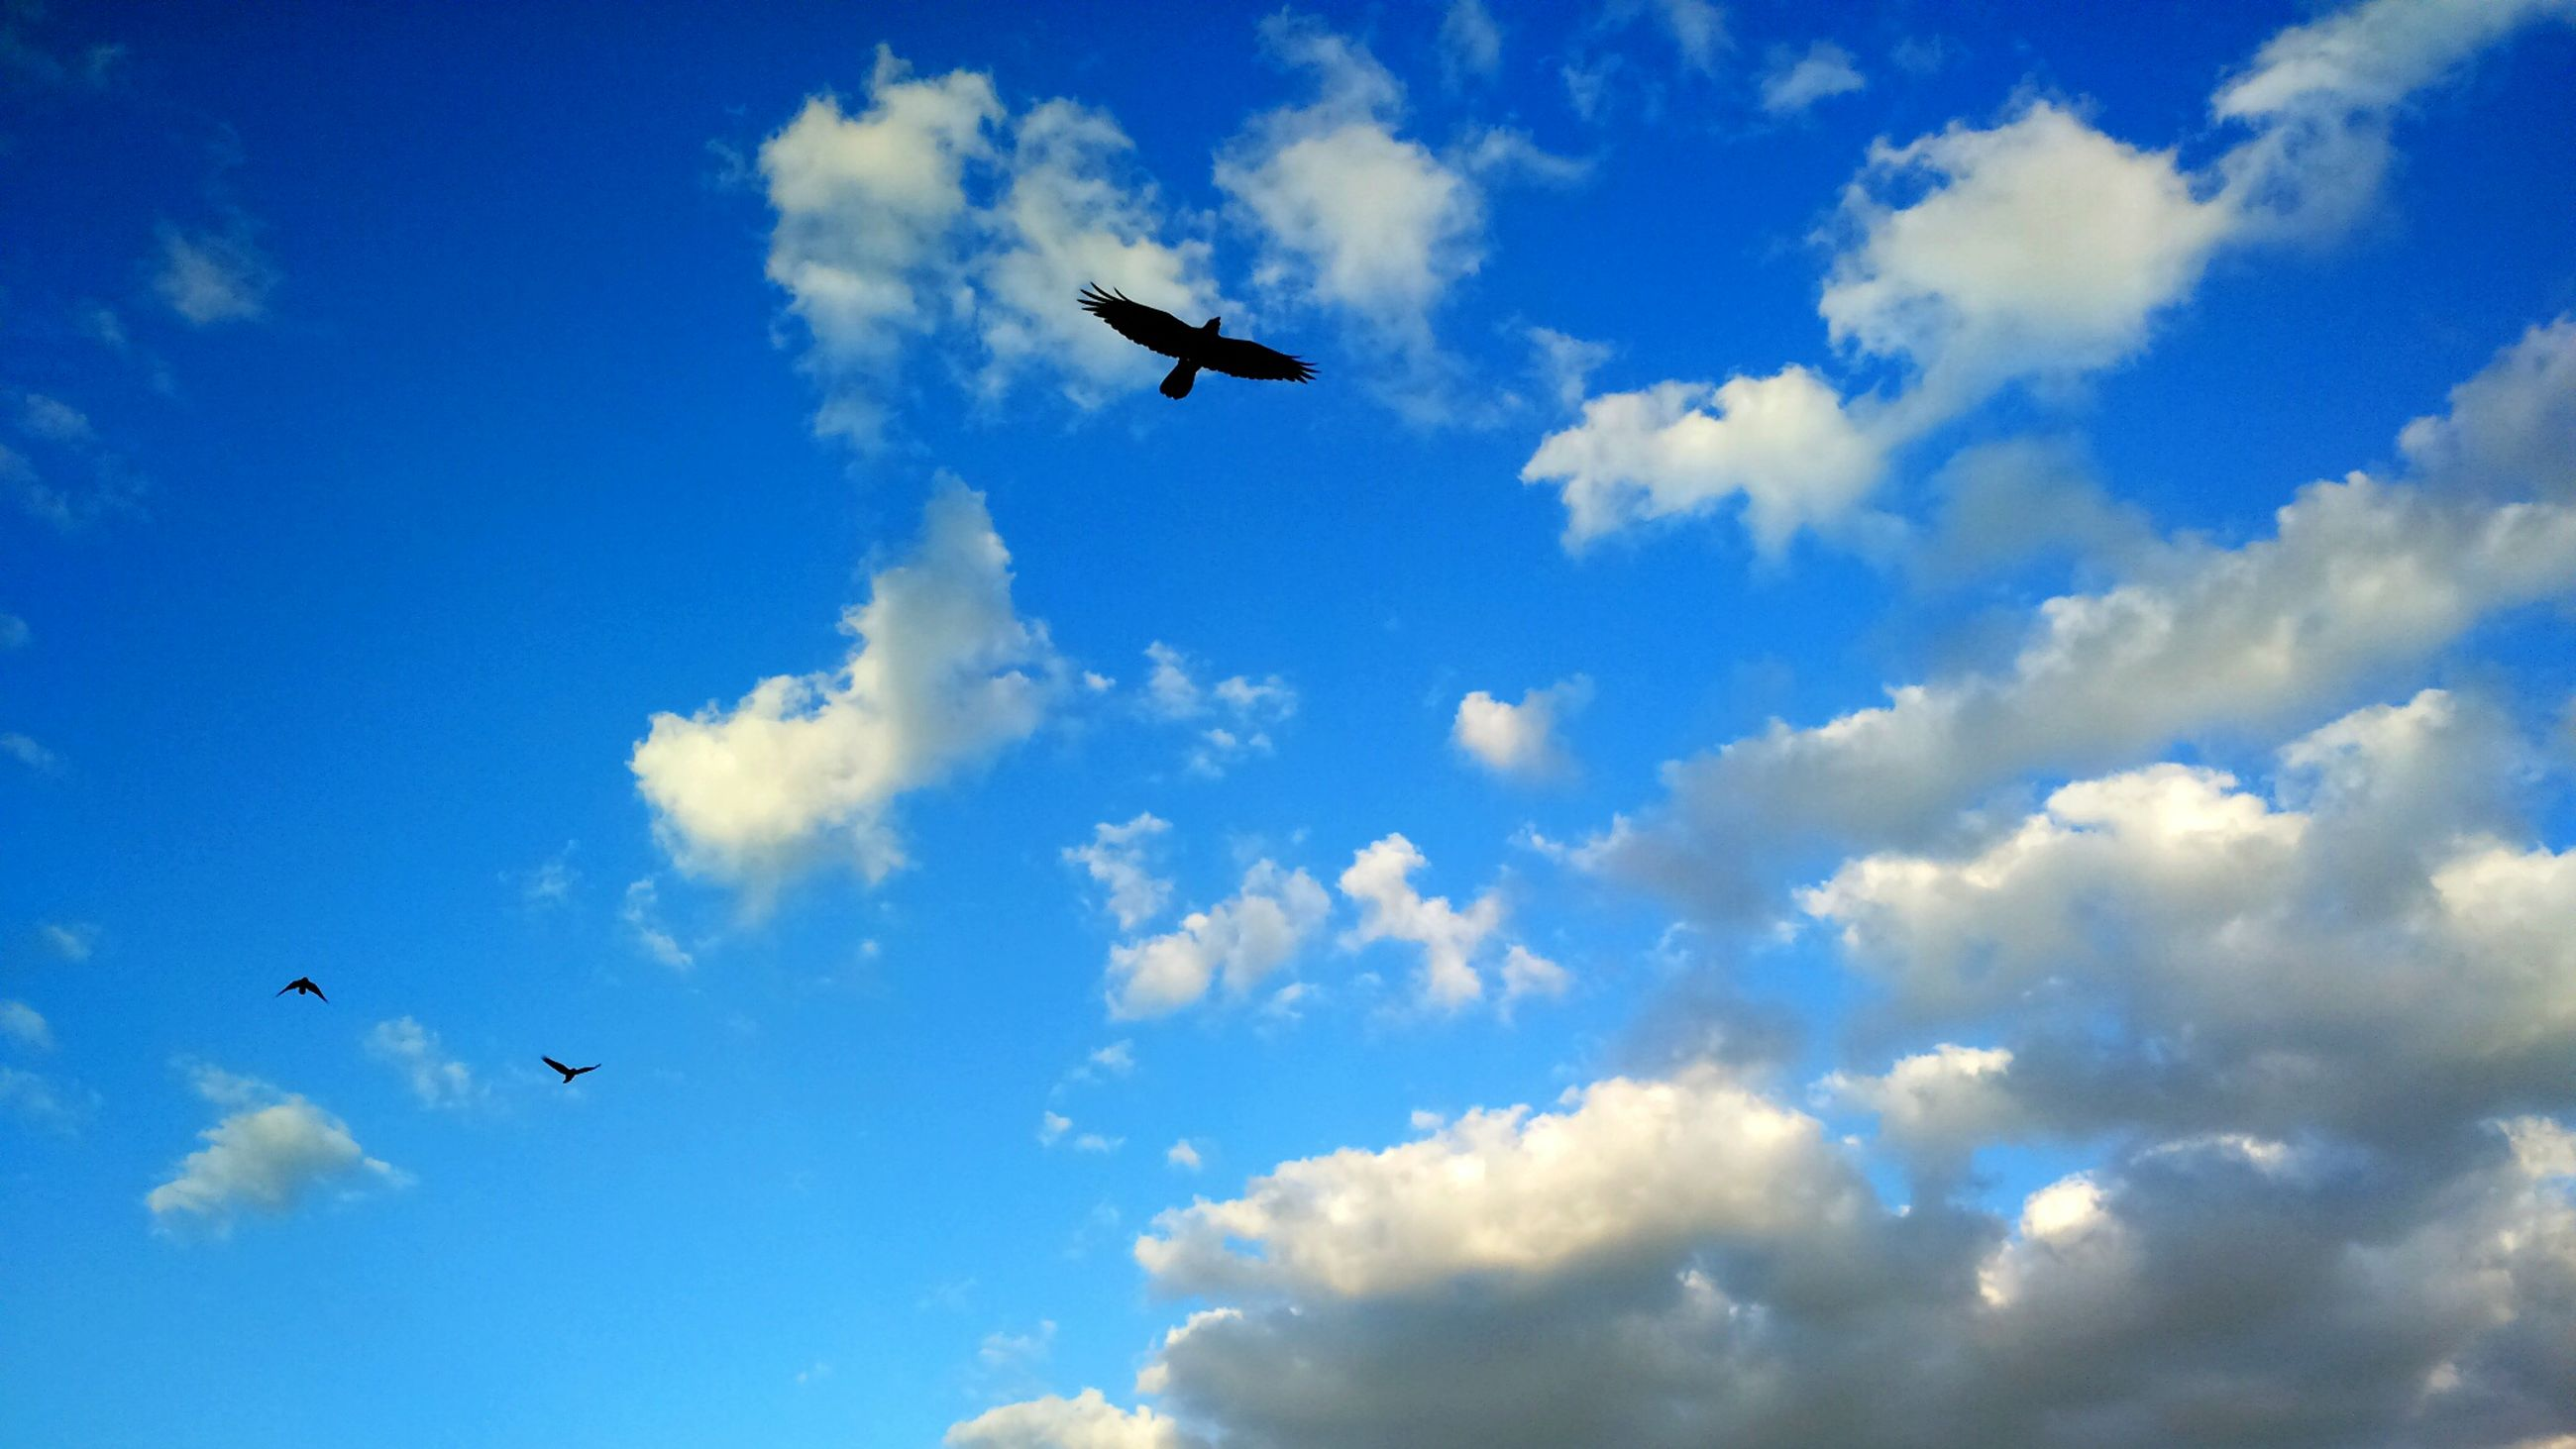 flying, low angle view, mid-air, bird, sky, airplane, blue, animal themes, air vehicle, wildlife, animals in the wild, transportation, on the move, cloud - sky, spread wings, mode of transport, flight, nature, cloud, day